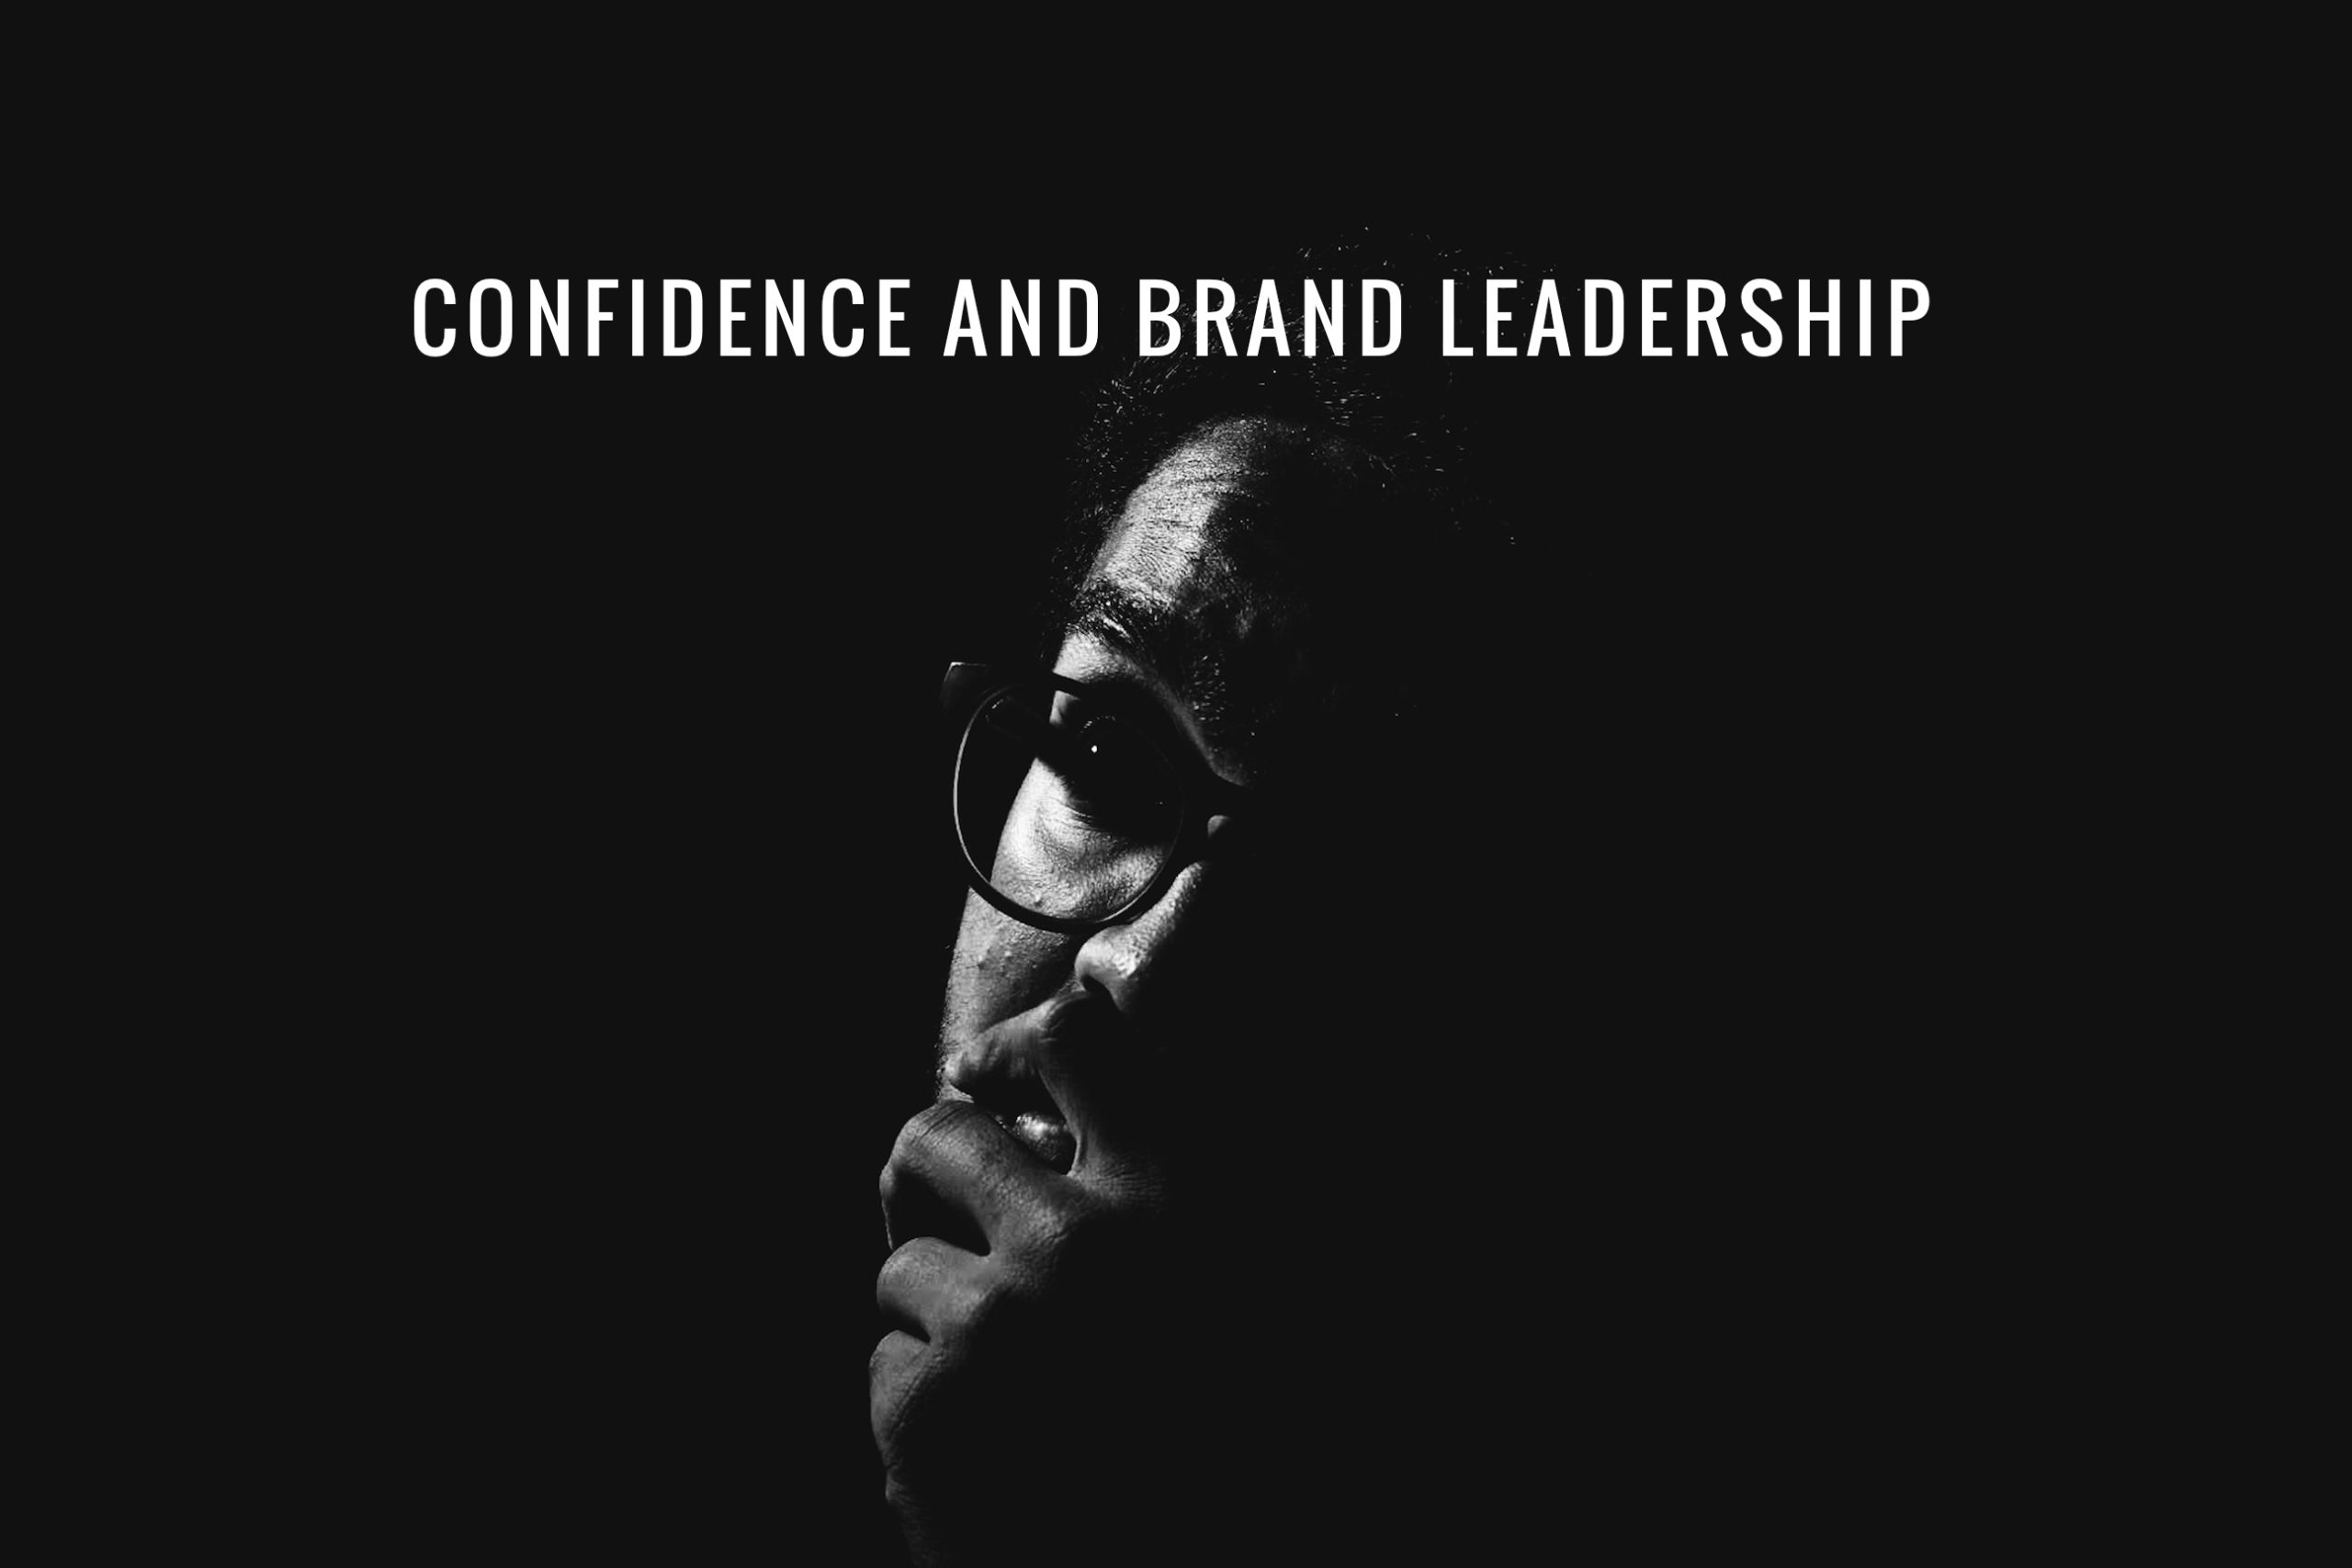 Confidence and brand leadership